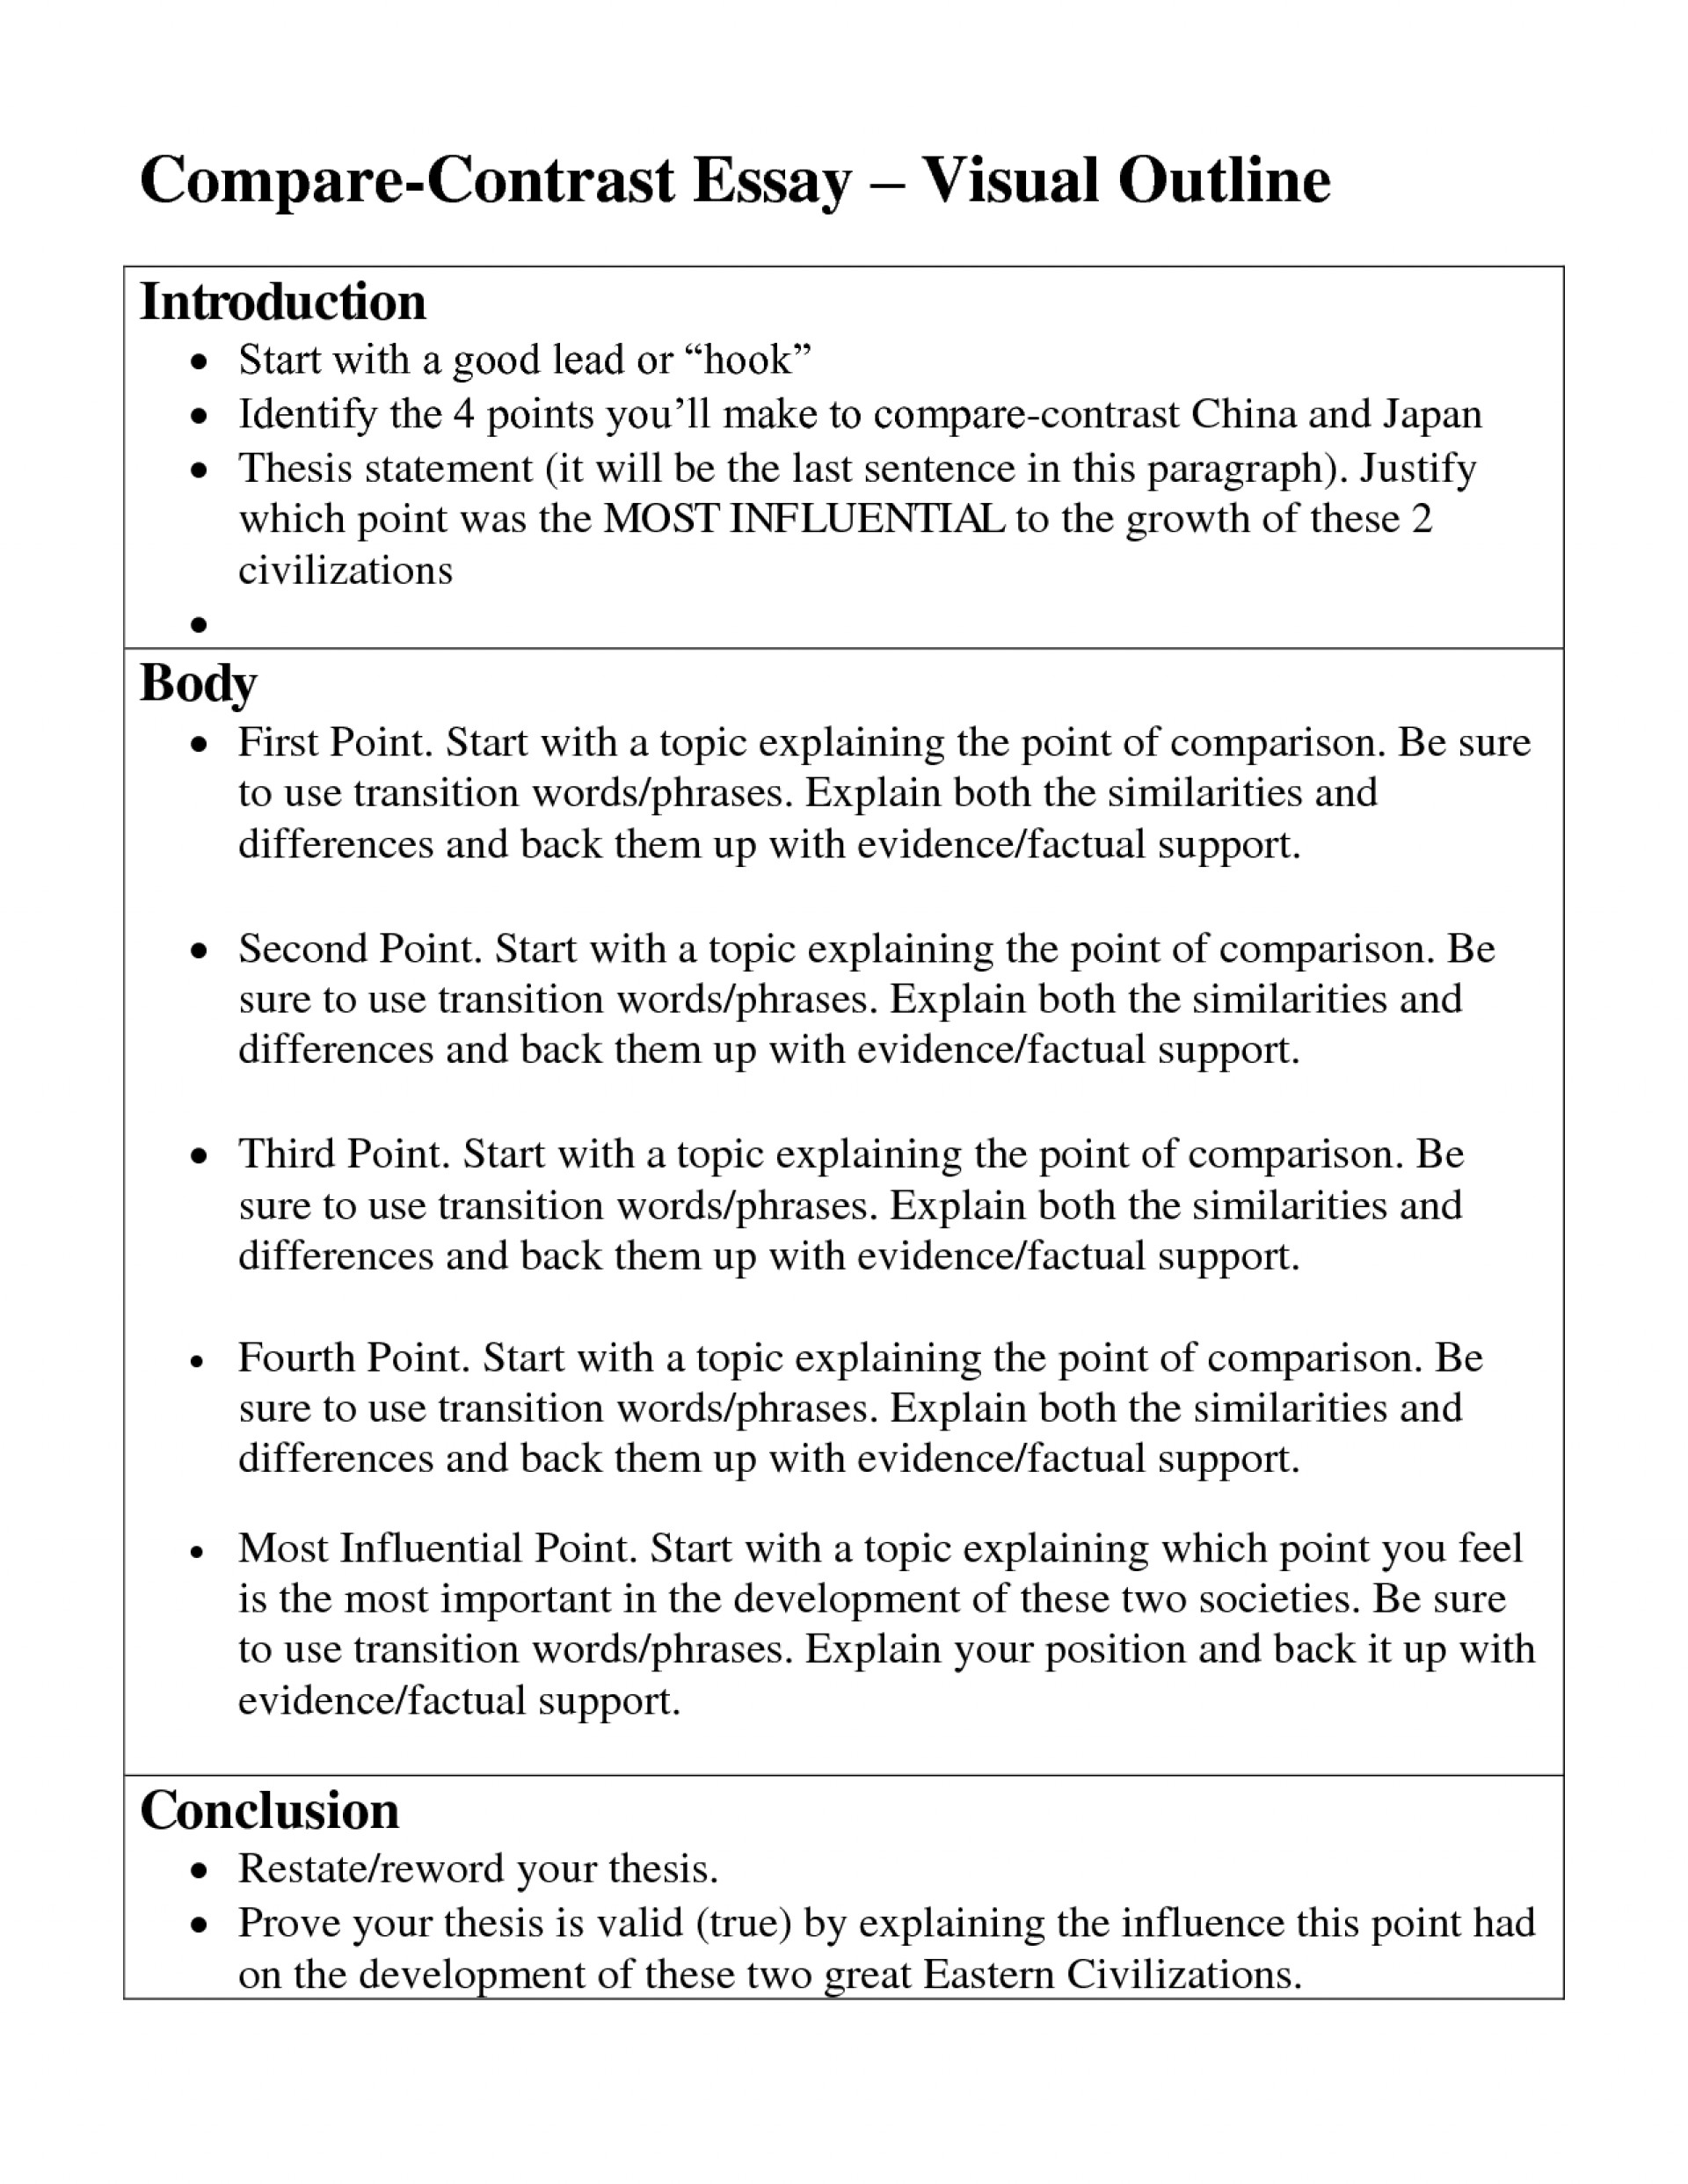 010 Compare Contrast Essays Essay Best Topics Technology Comparison Outline And Format 1920